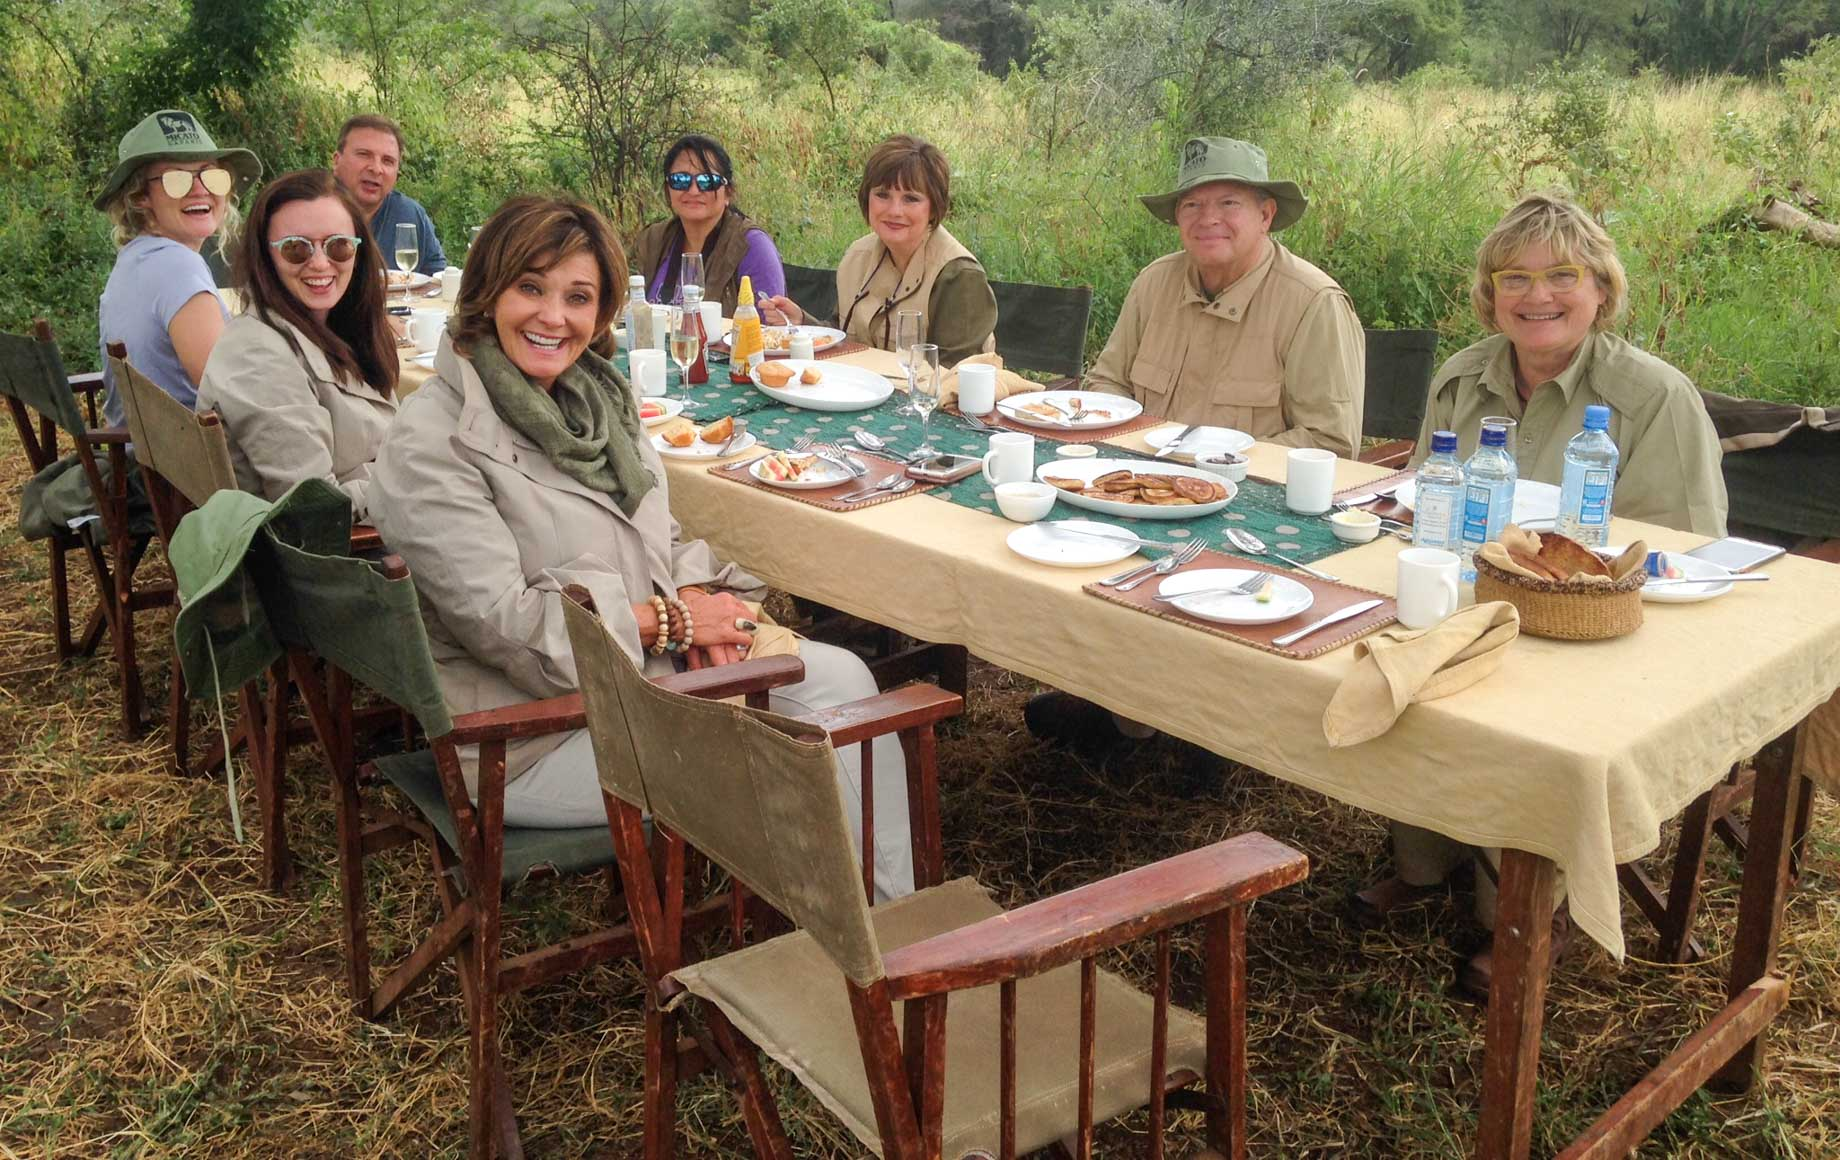 Friends and family dinner at Meru National Park, Kenya